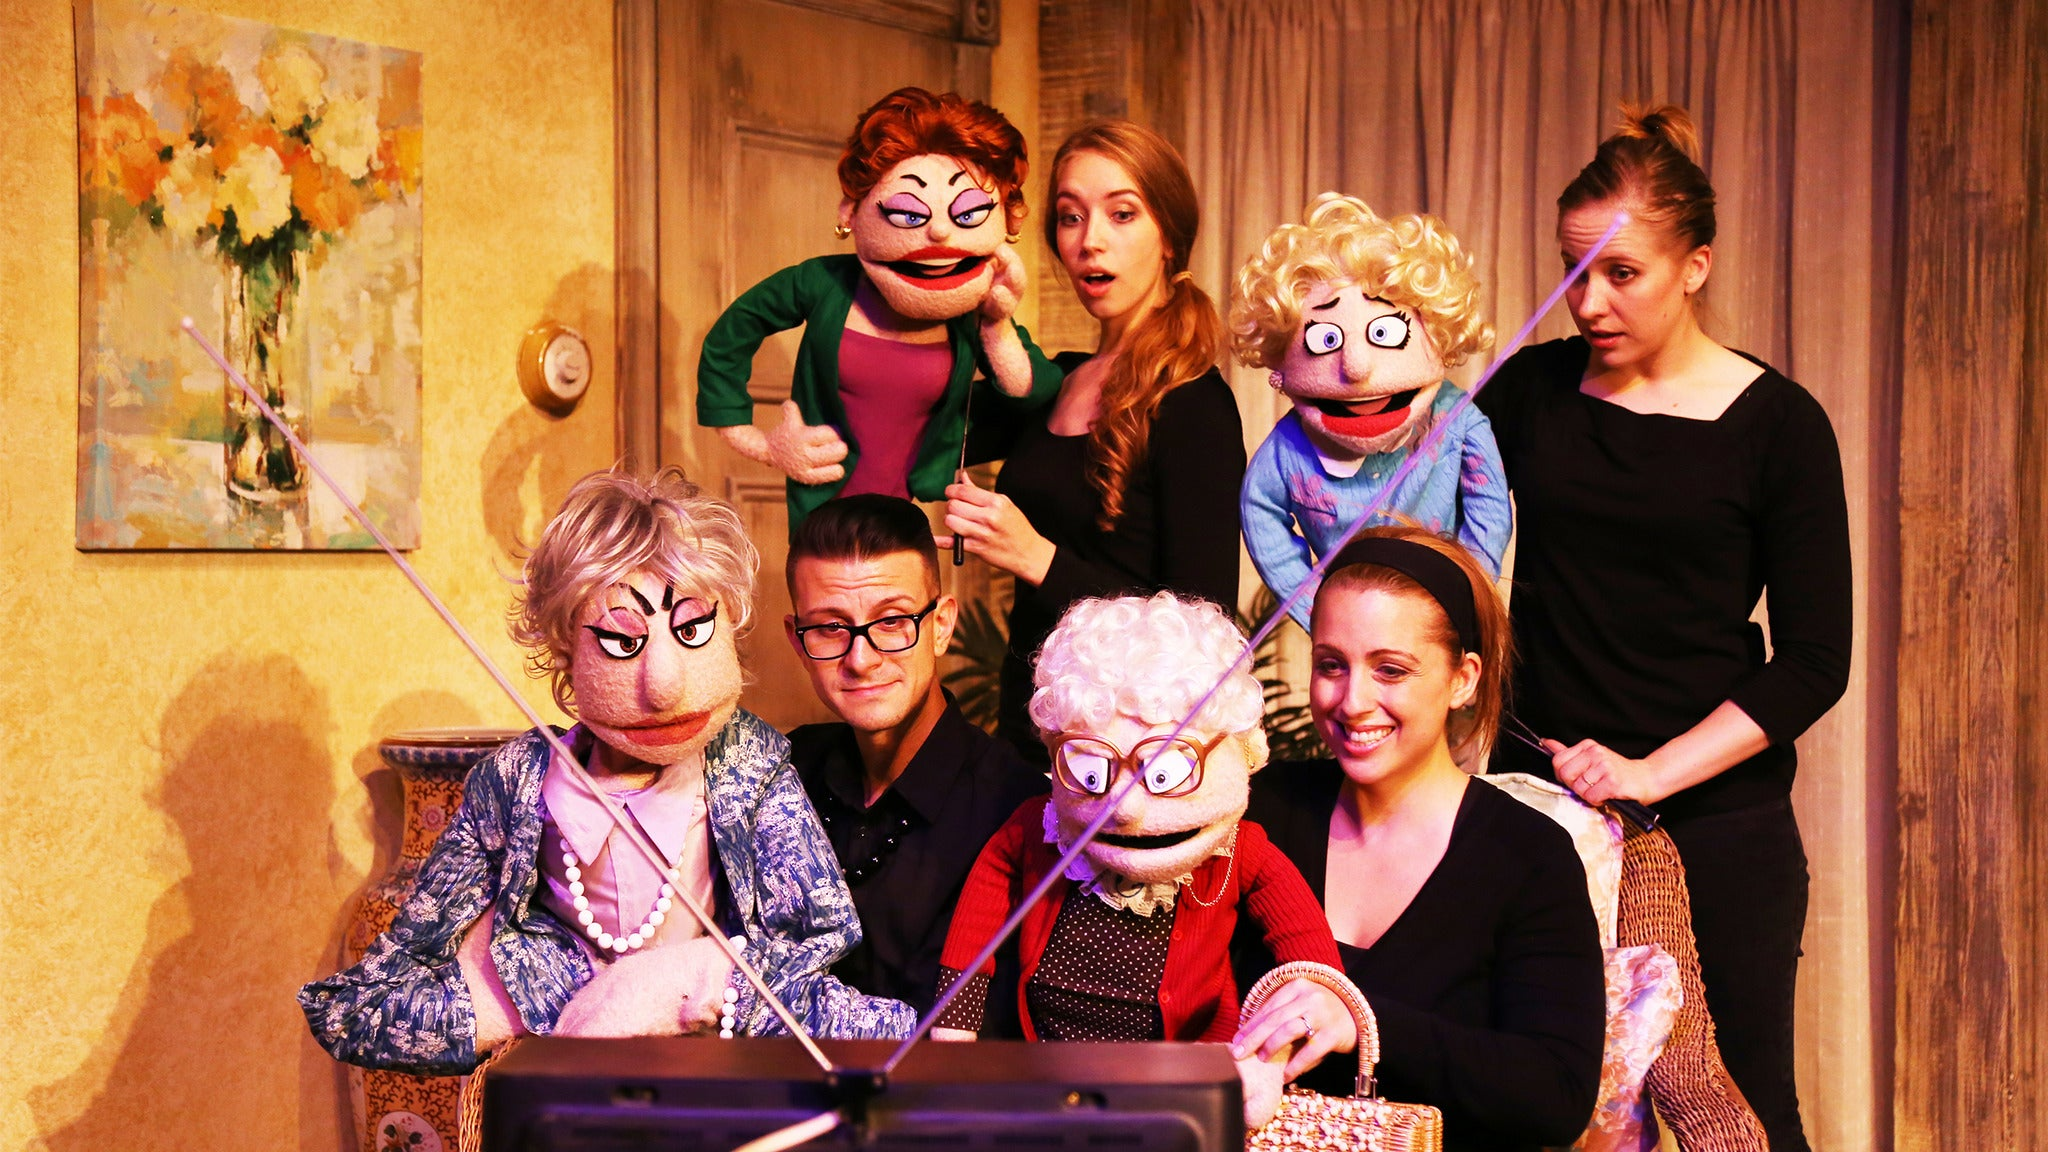 presale password for That Golden Girls Show! A Puppet Parody (Touring) tickets in Waukegan - IL (Genesee Theatre)